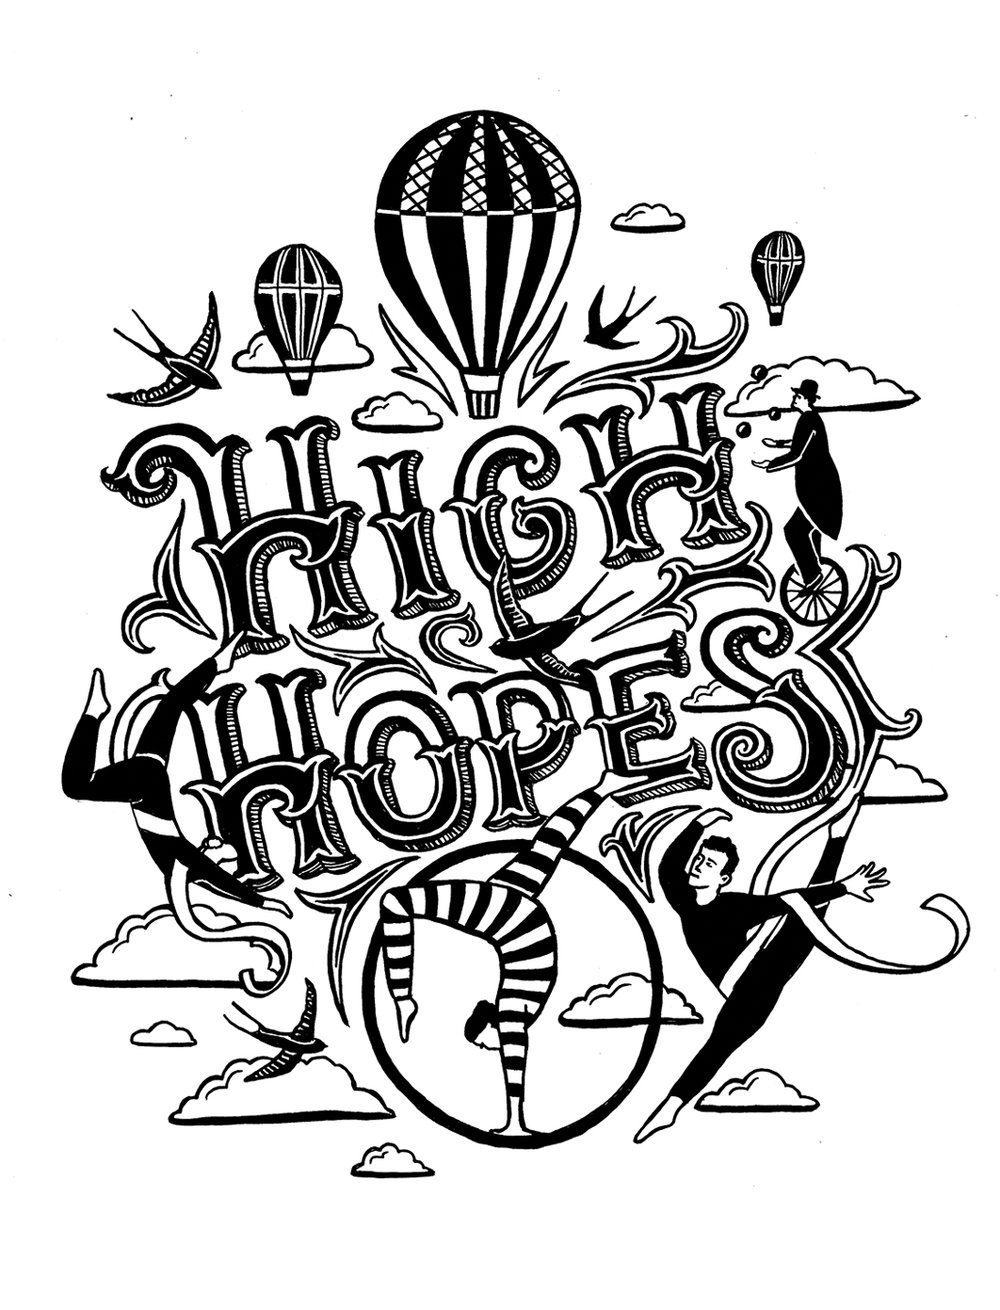 High Hopes print